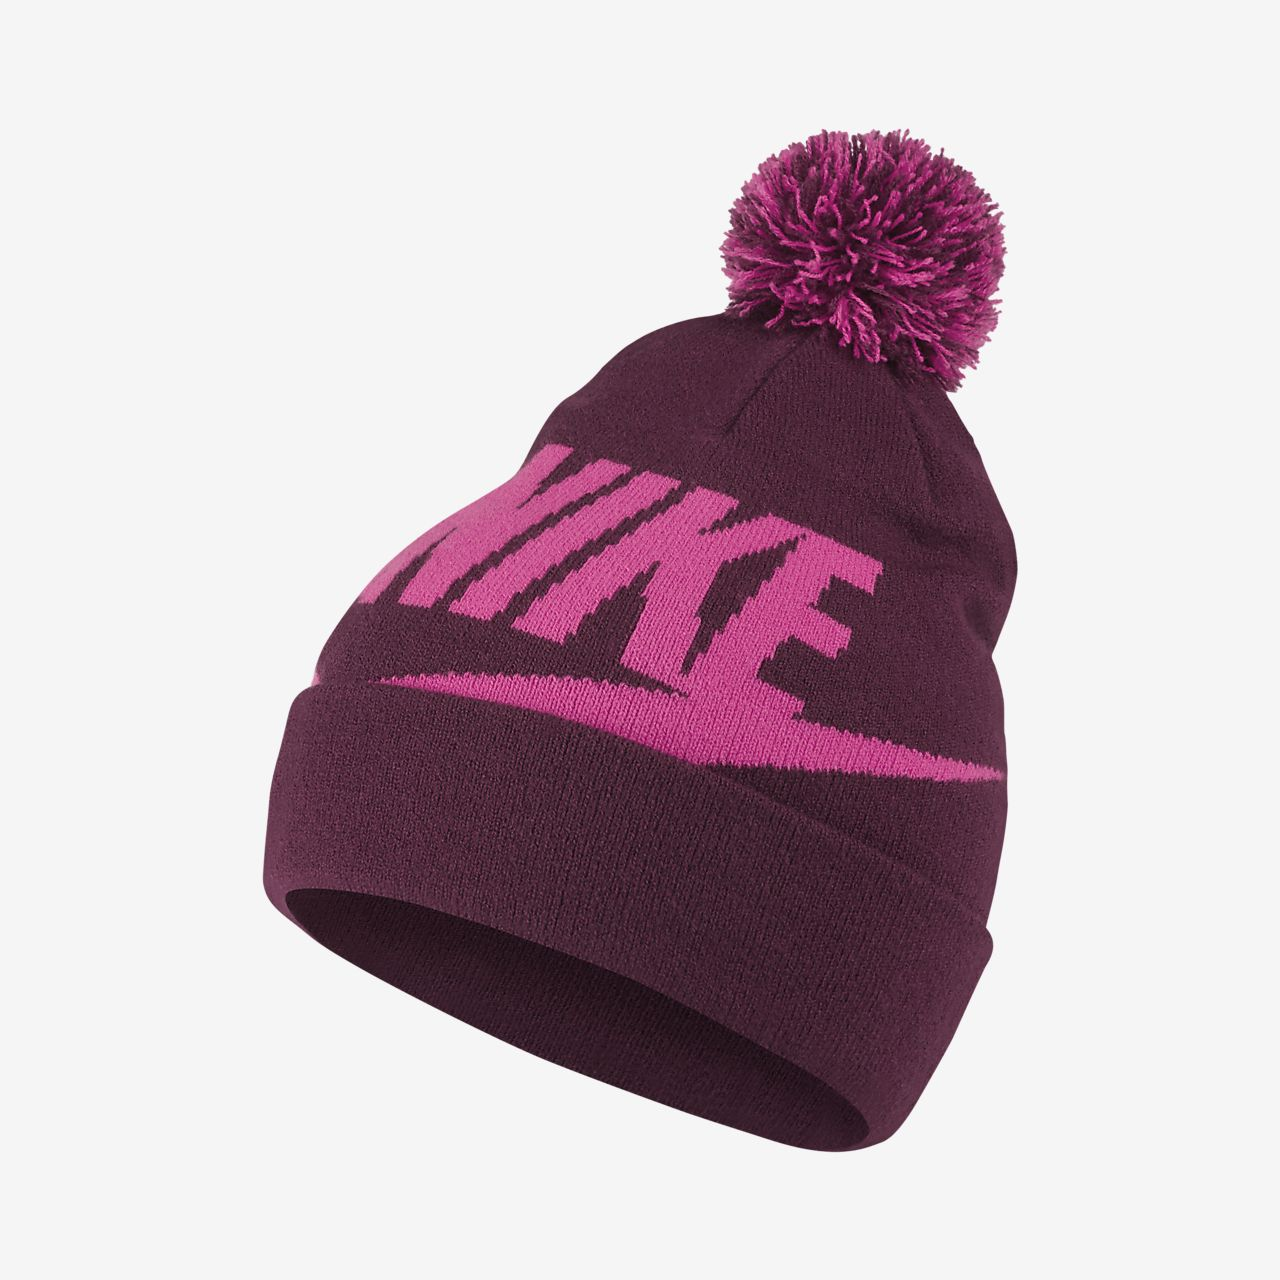 premium selection 39561 f53a5 ... usa nike sportswear pom beanie older kids knit hat f9996 8a5aa ...